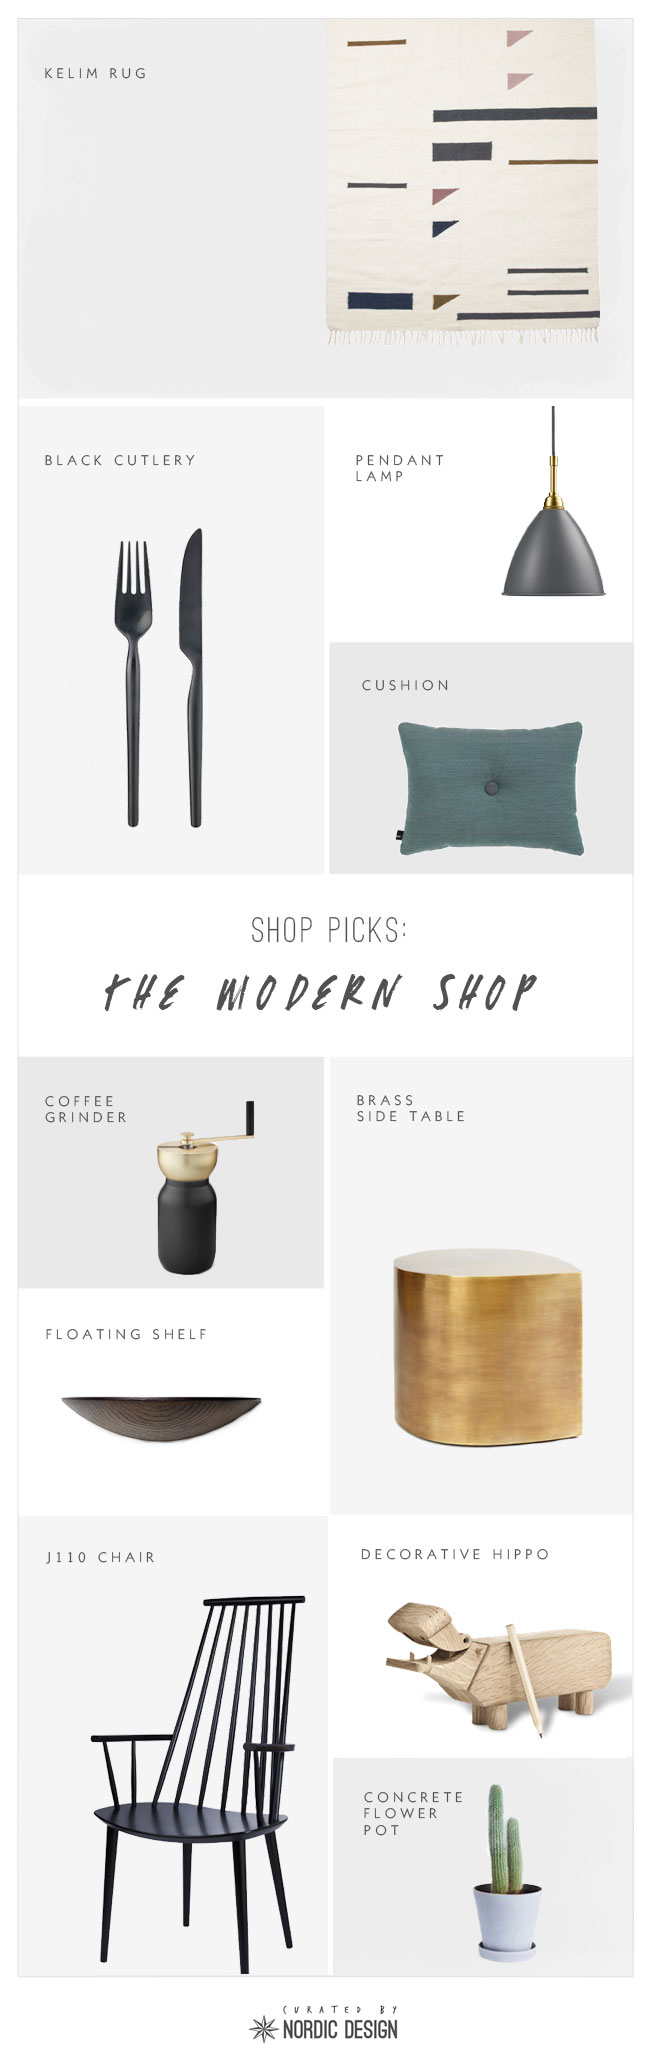 Shop-picks-TheModernShop